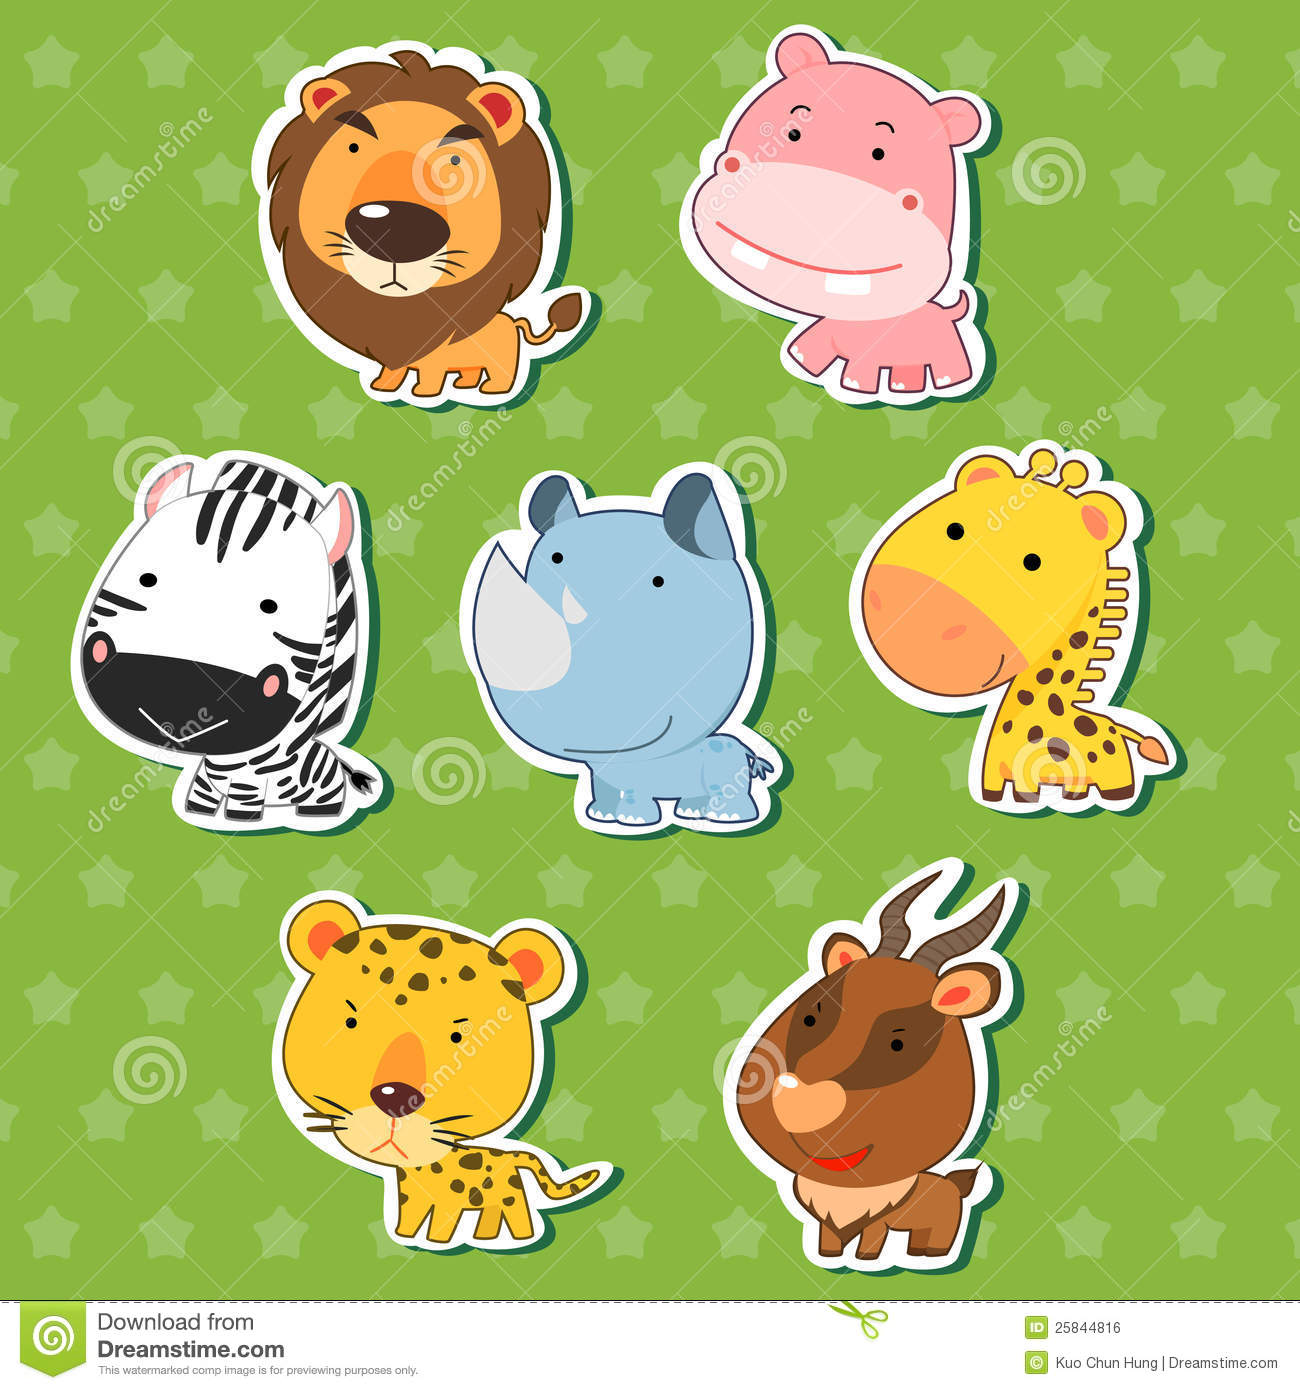 cartoon animal stickers in - photo #44